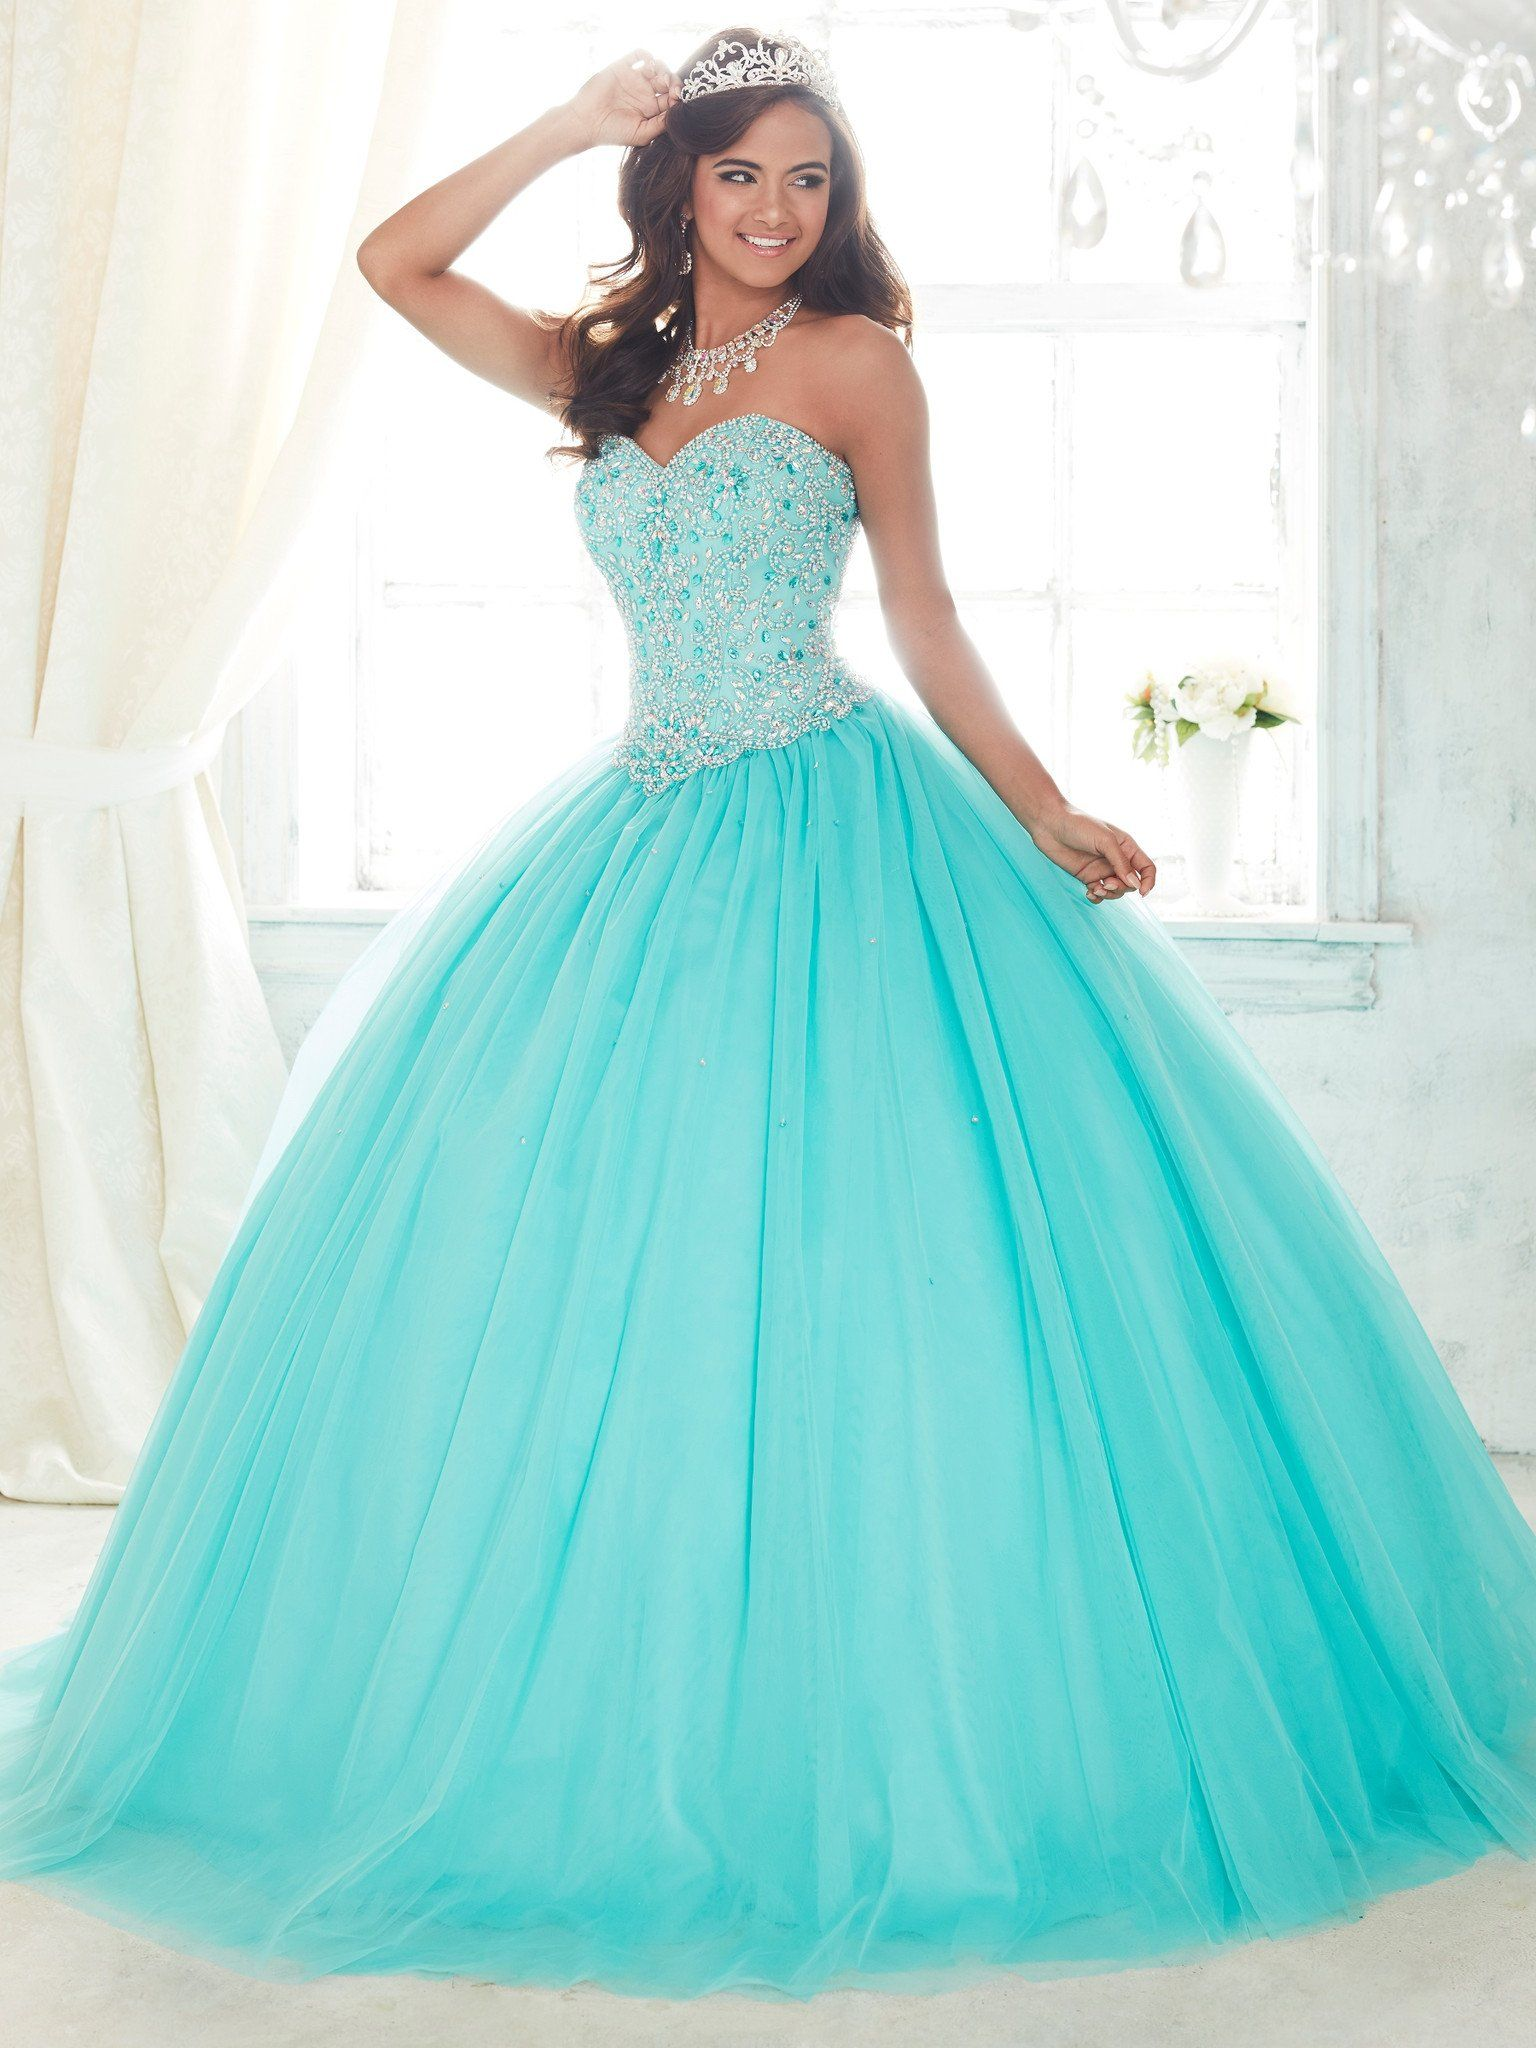 Pearl Beaded Strapless Dress by House of Wu Fiesta Gowns Style 56300